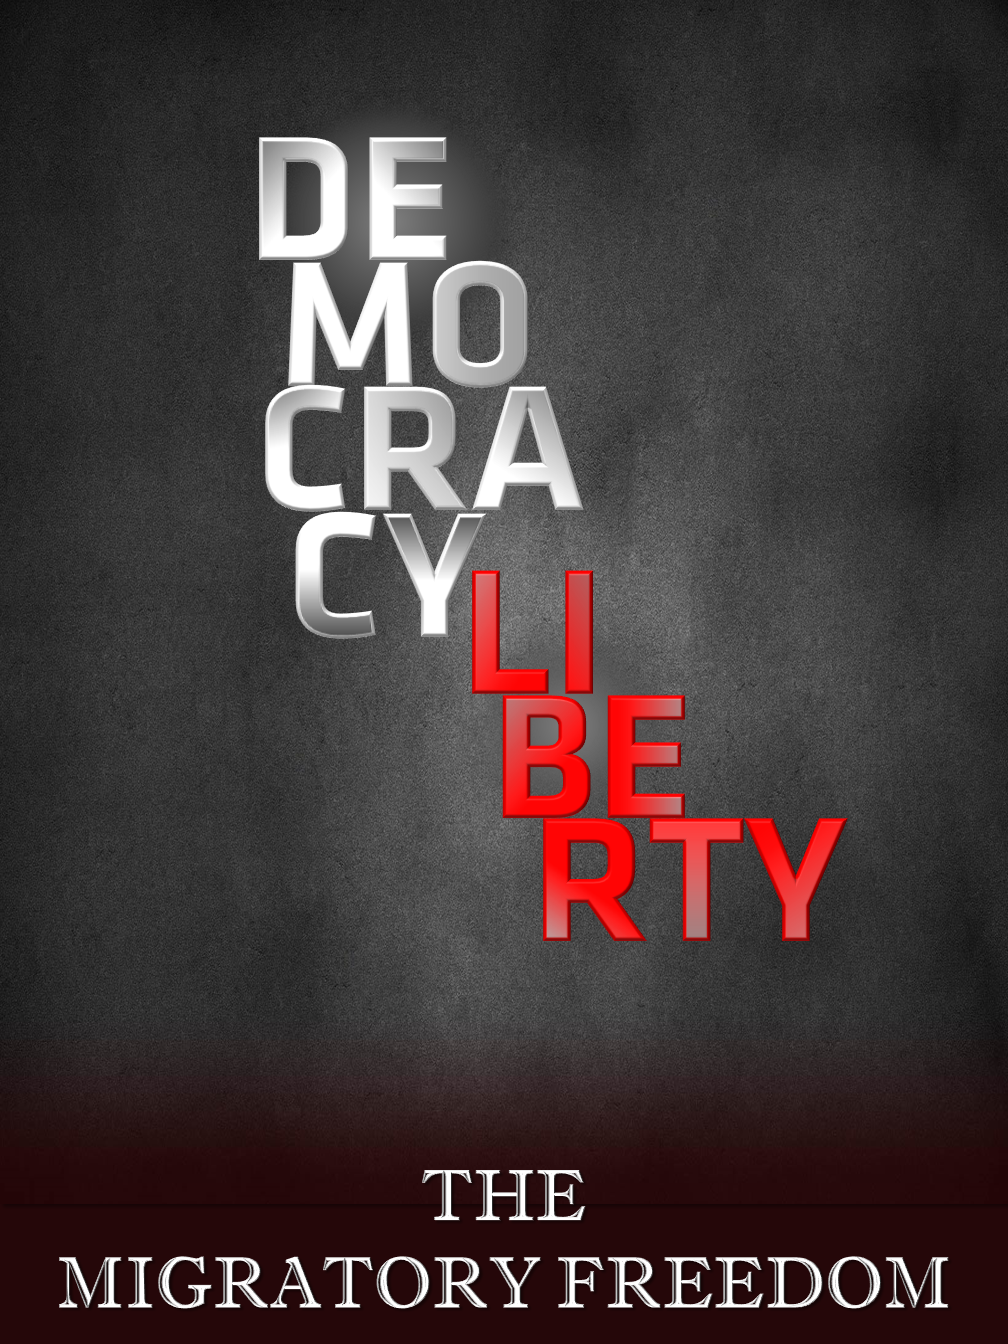 Democracy & Liberty